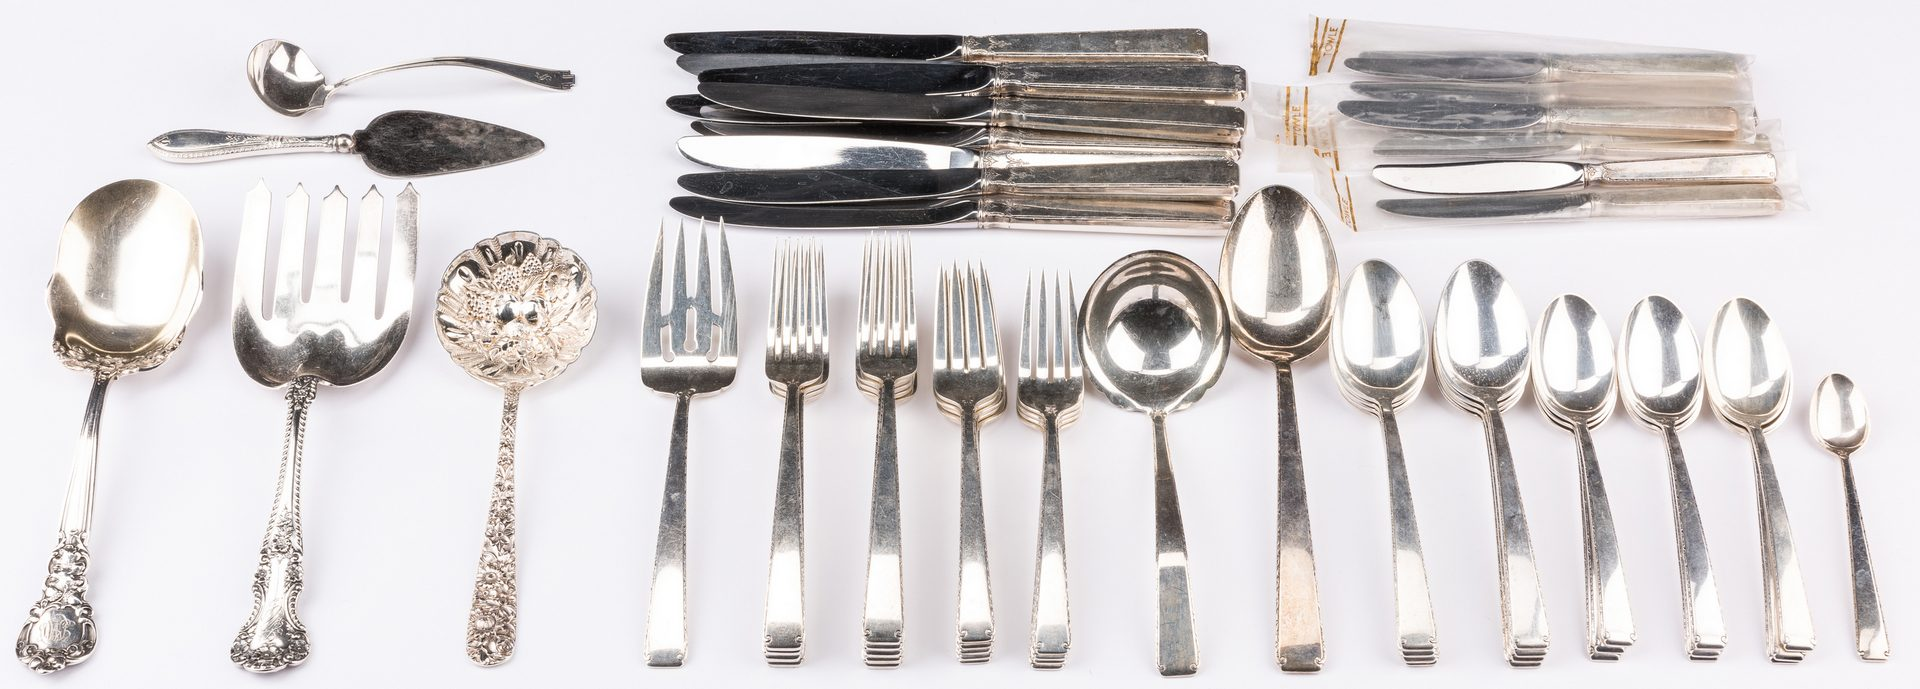 Lot 572: Towle Old Lace Sterling Flatware & more, 61 pcs